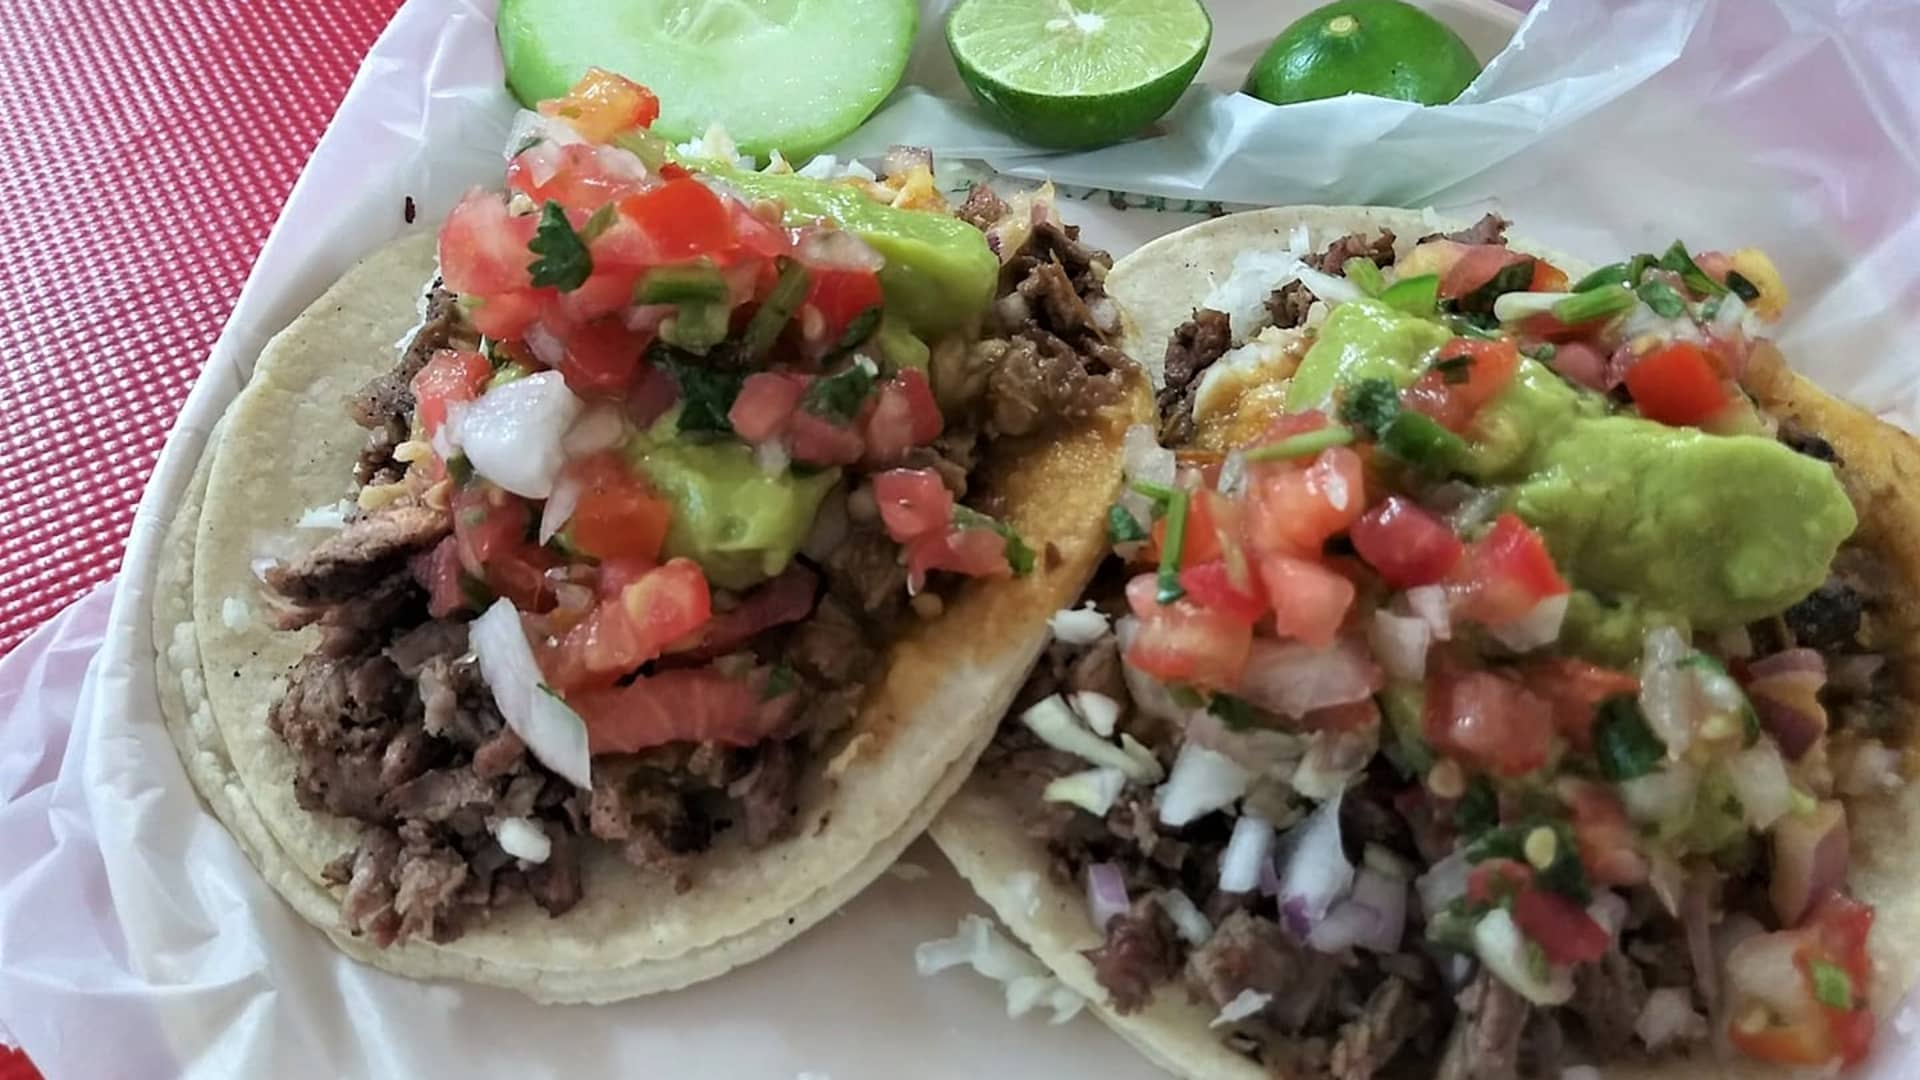 Classic carne asada tacos on fresh-made corn tortillas with all the fixings—what's not to love?!